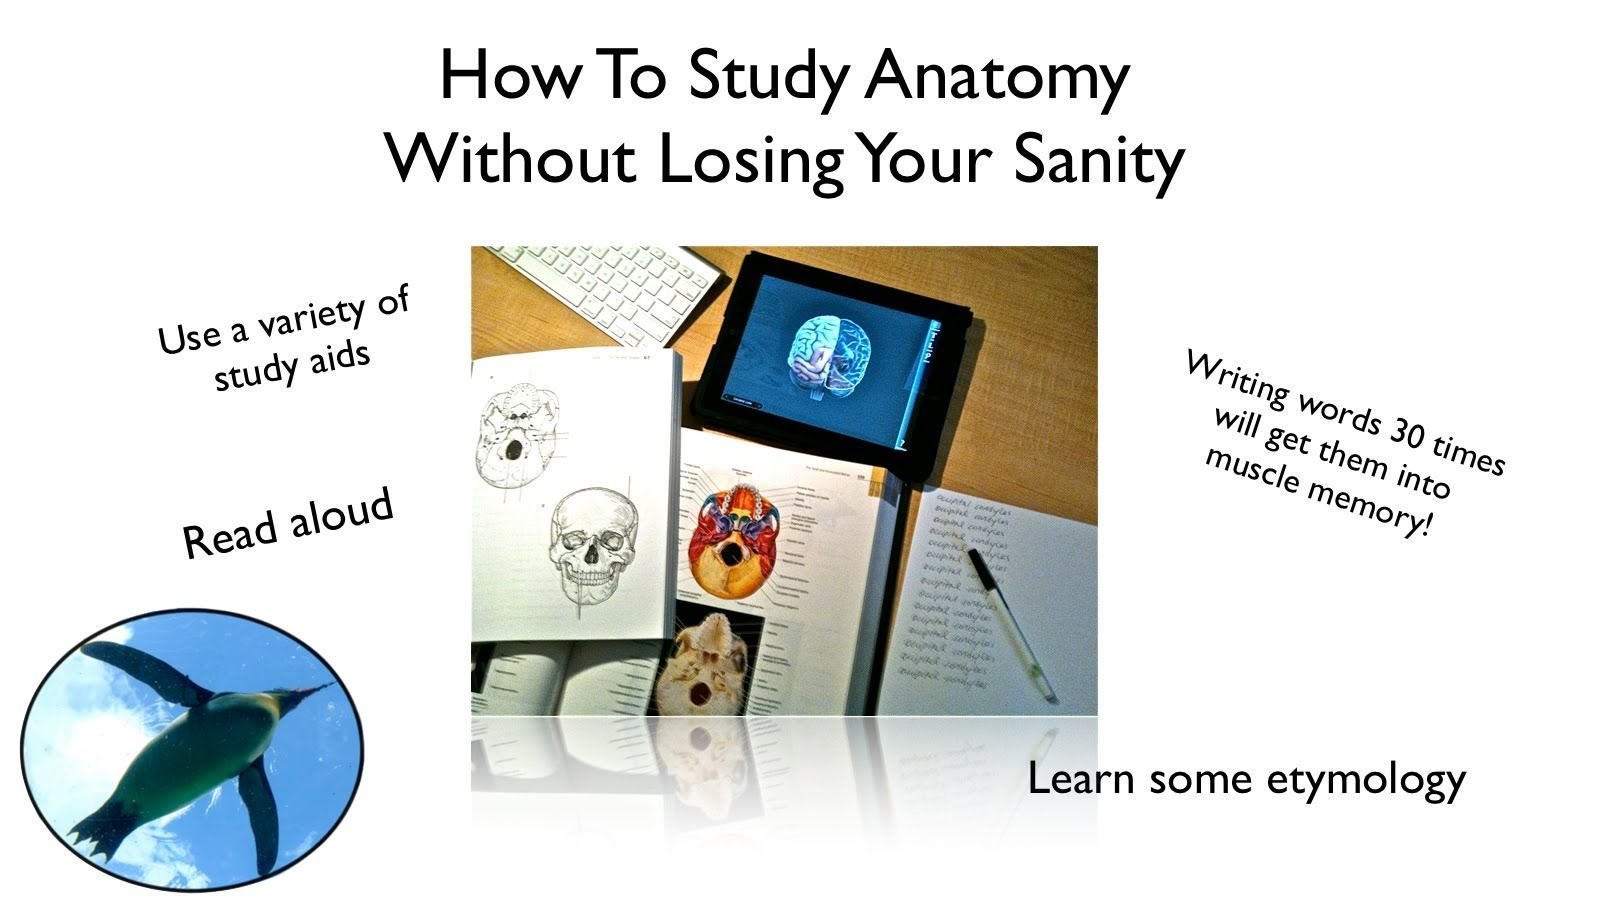 How To Study Anatomy Without Losing Your Sanity! | Just CA stuff ...